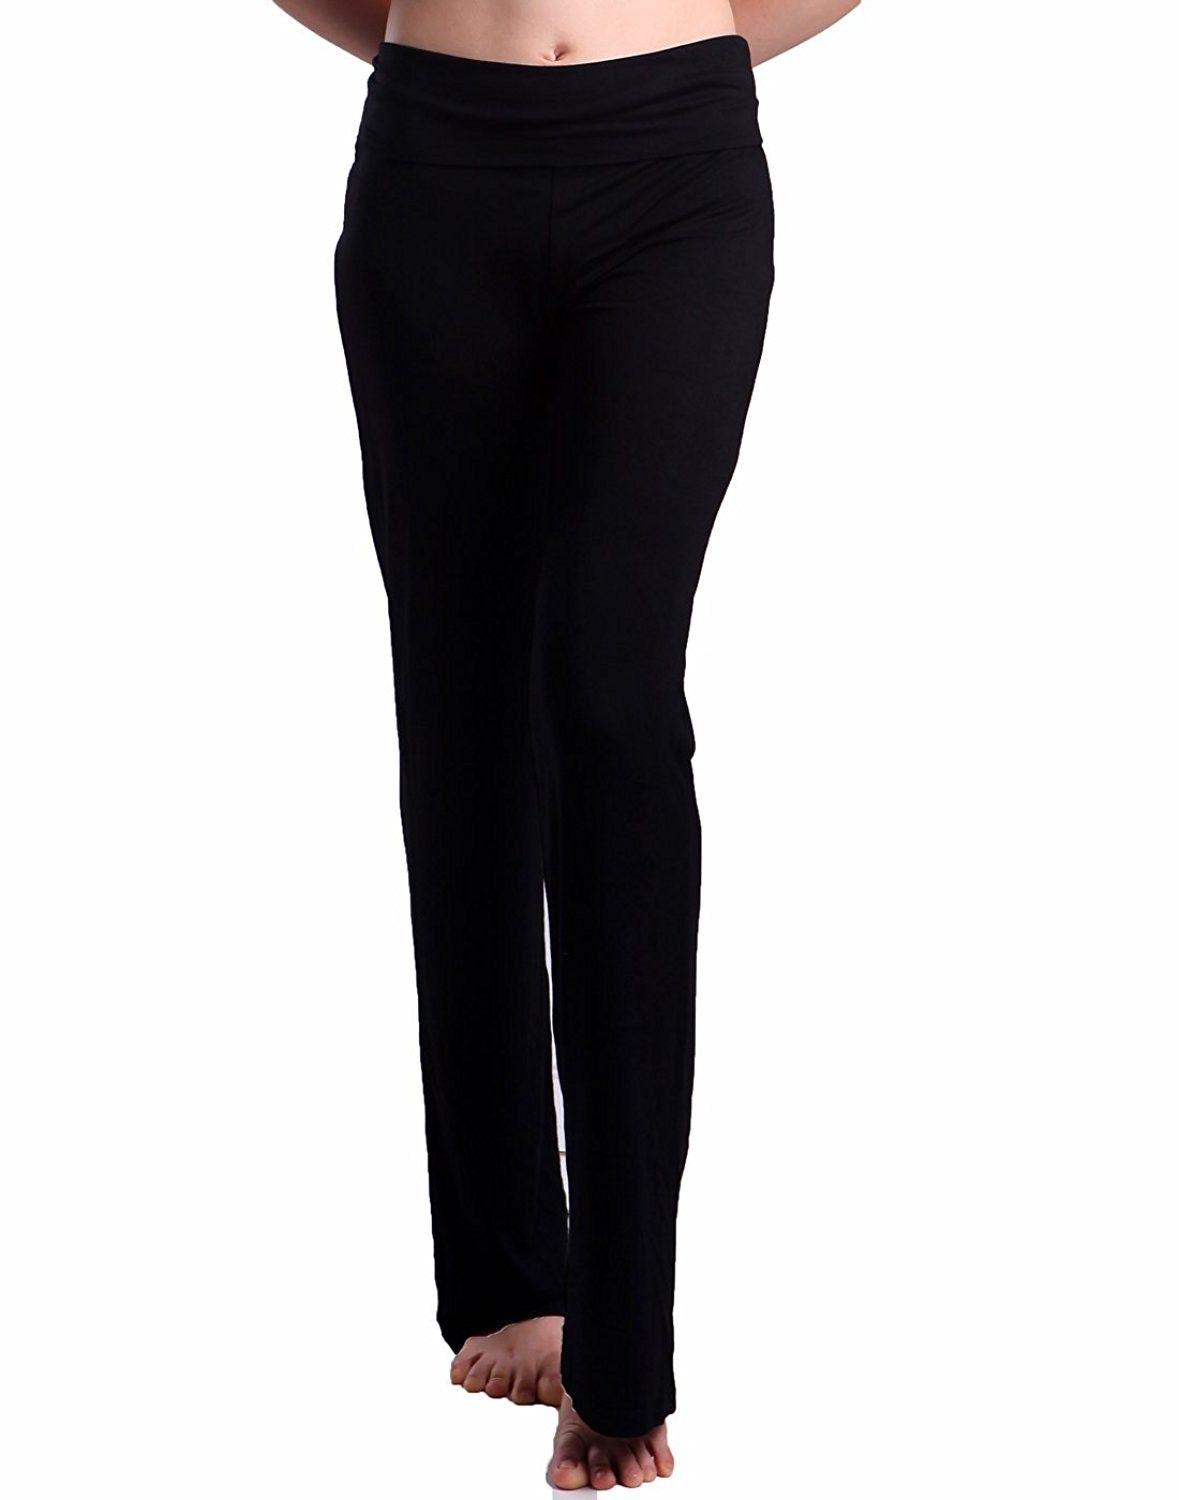 8bcd6459ce Women's Color Block Fold Over Waist Yoga Pants Flare Leg Workout Leggings -  Black - C01219GSGM9,Women's Clothing, Active, Active Pants #women #fashion  ...